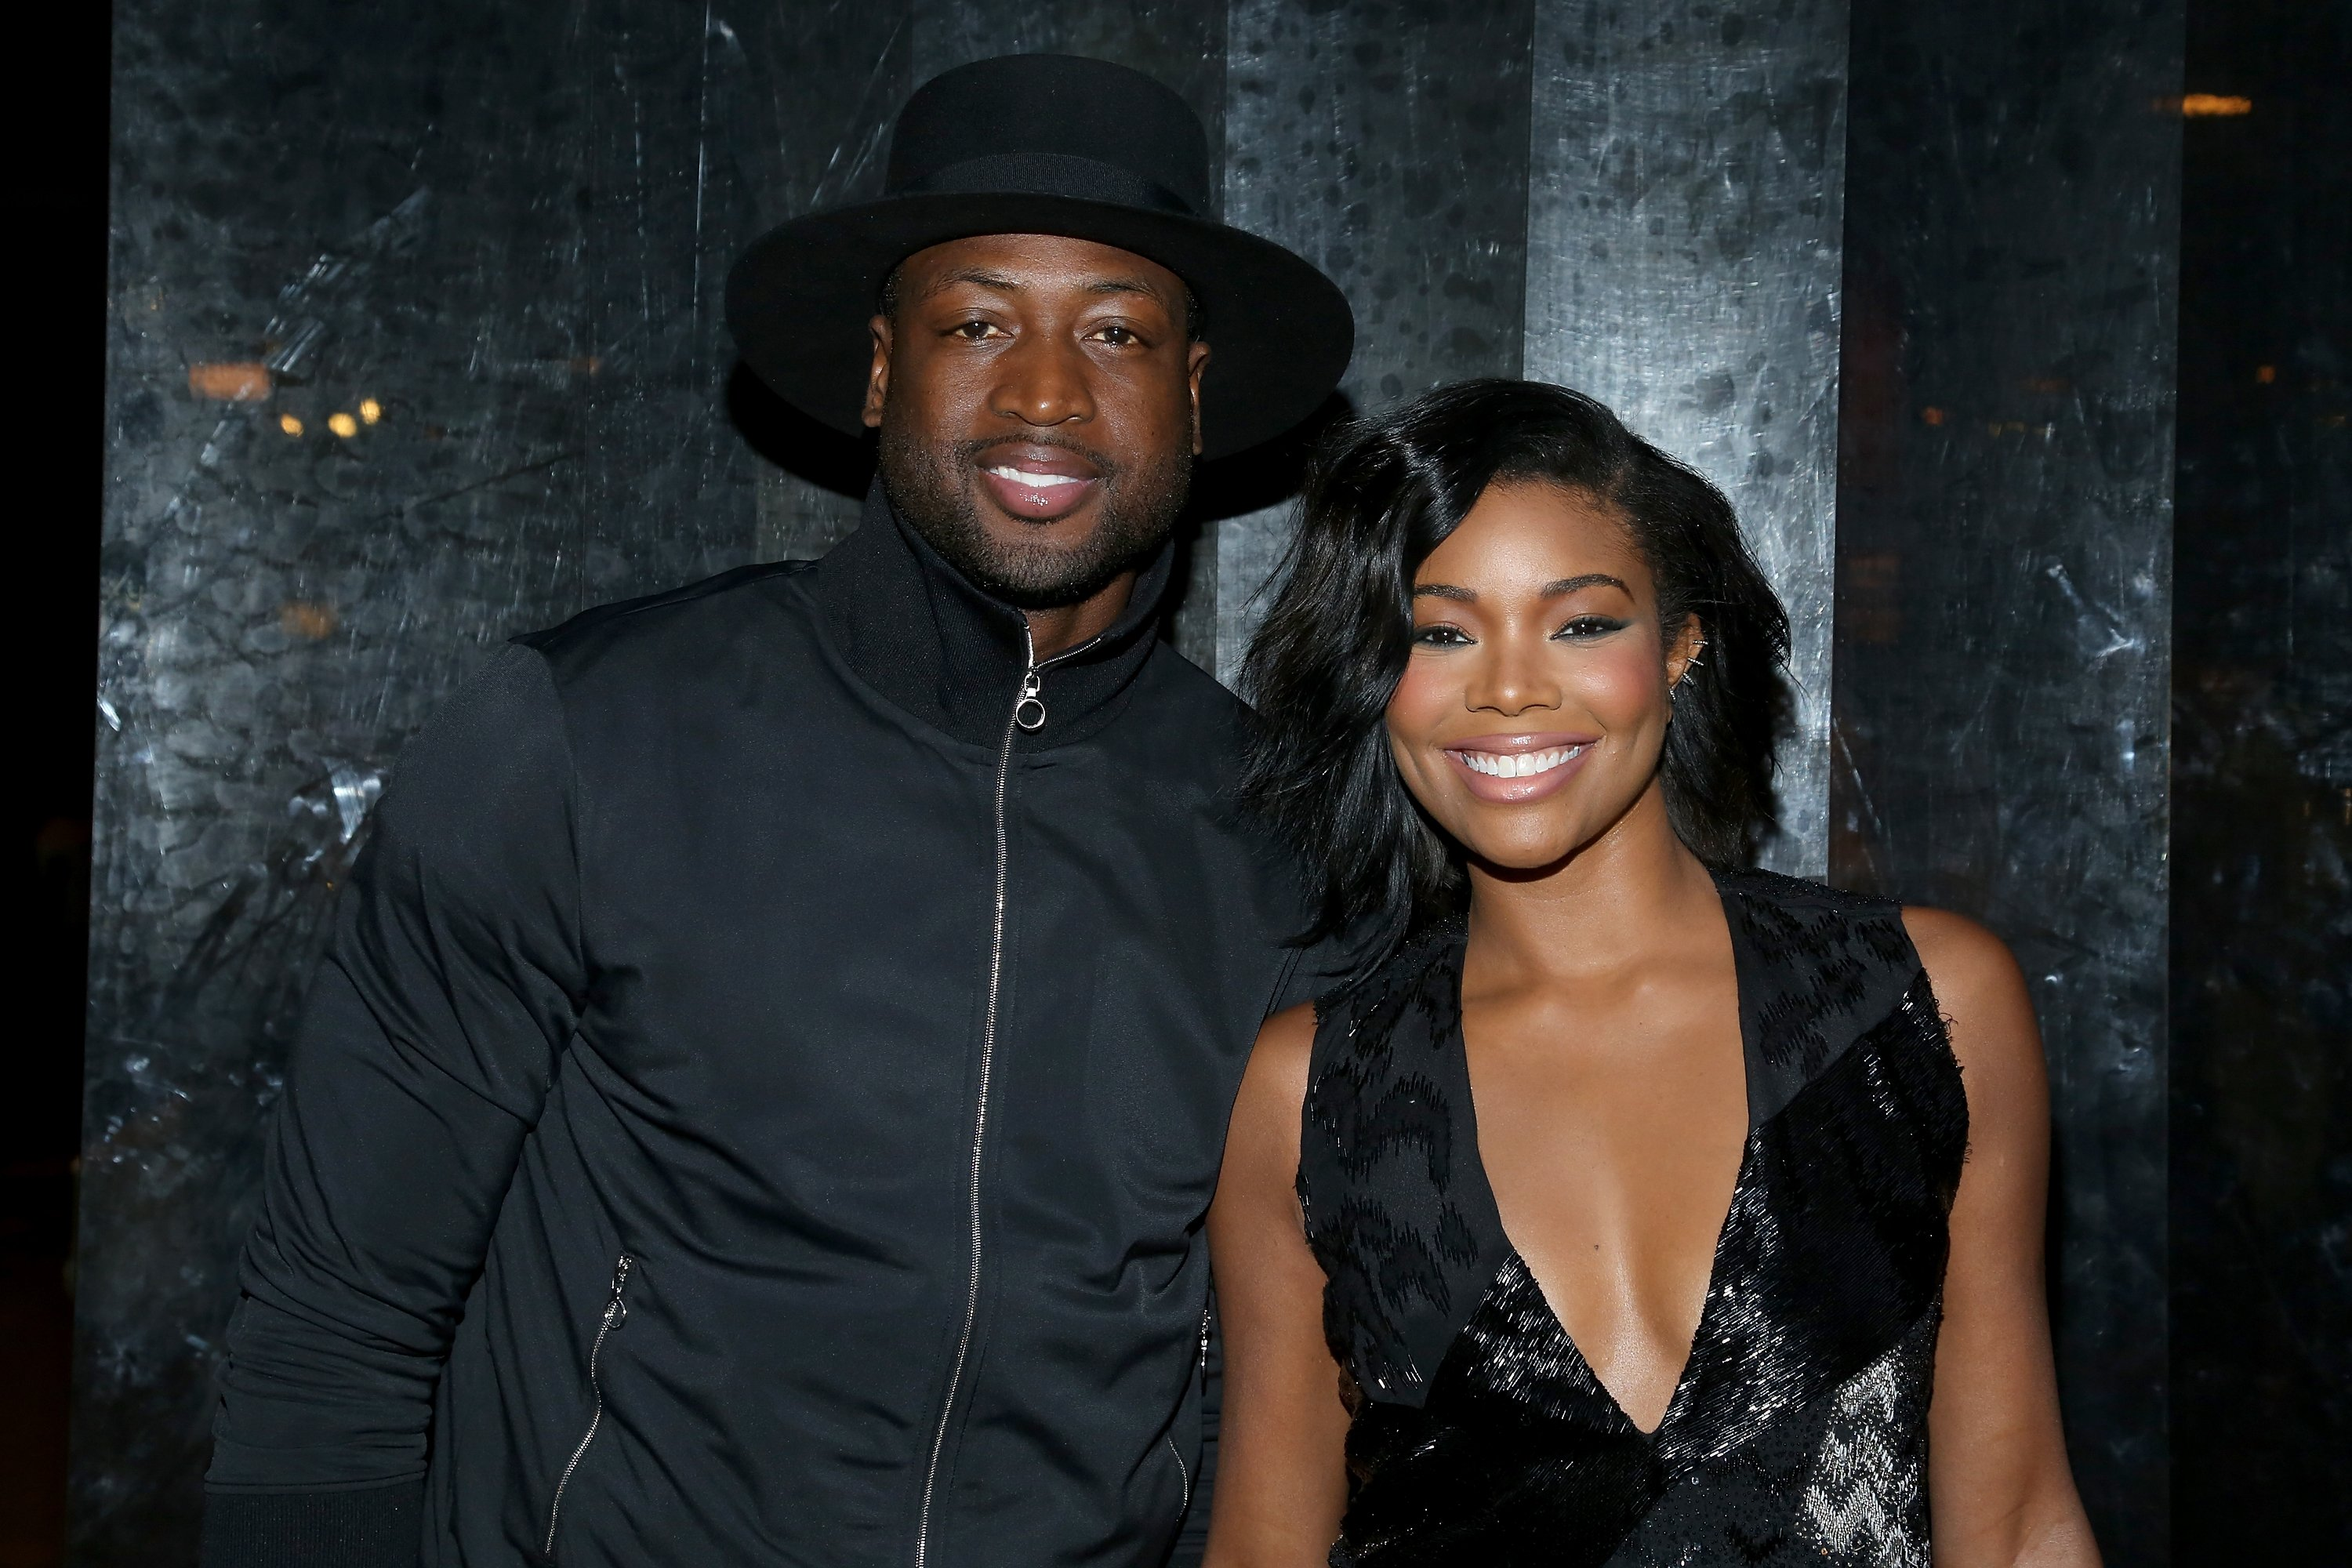 Gabrielle Union and Dwyane Wade at the Spring 2016 New York Fashion Week on September 13, 2015 in New York City.| Source: Getty Images